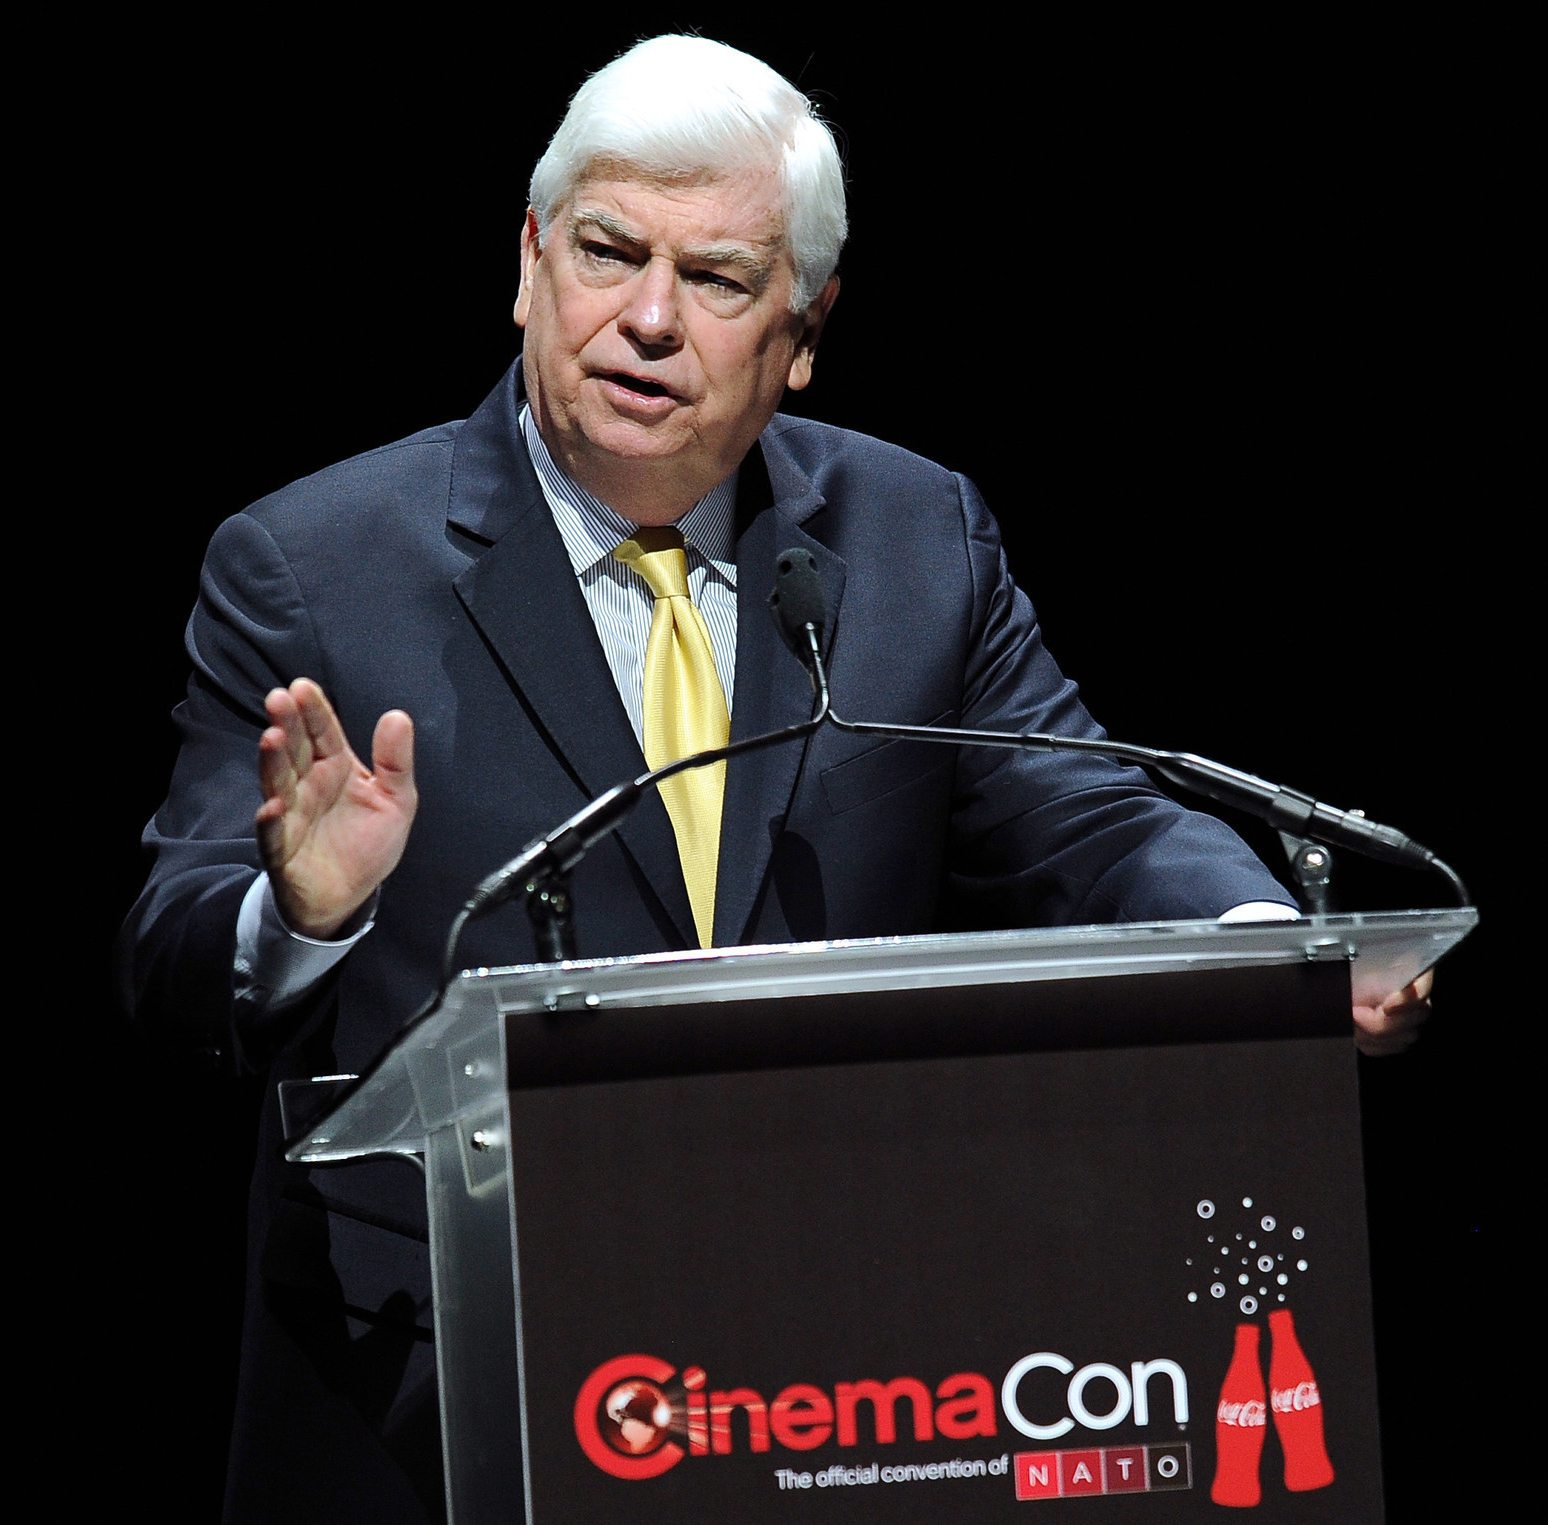 Chris Dodd of the MPAA at CinemaCon in 2014